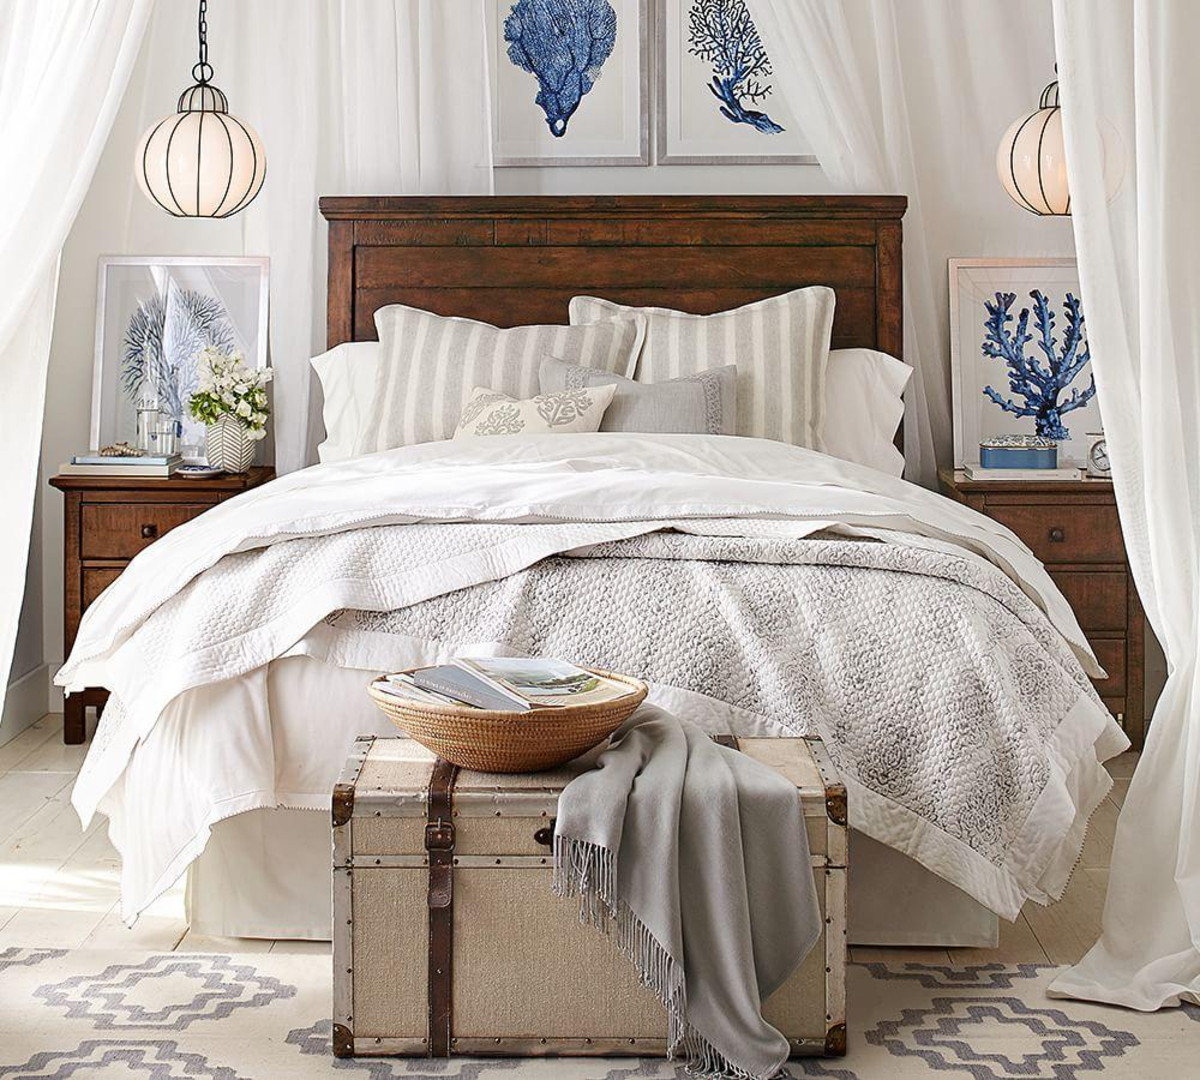 jamie stripe linen cotton duvet cover sham flax pottery barn media accent table amp wells chair ethan allen end with drawer bunnings wicker outdoor setting vintage entry room